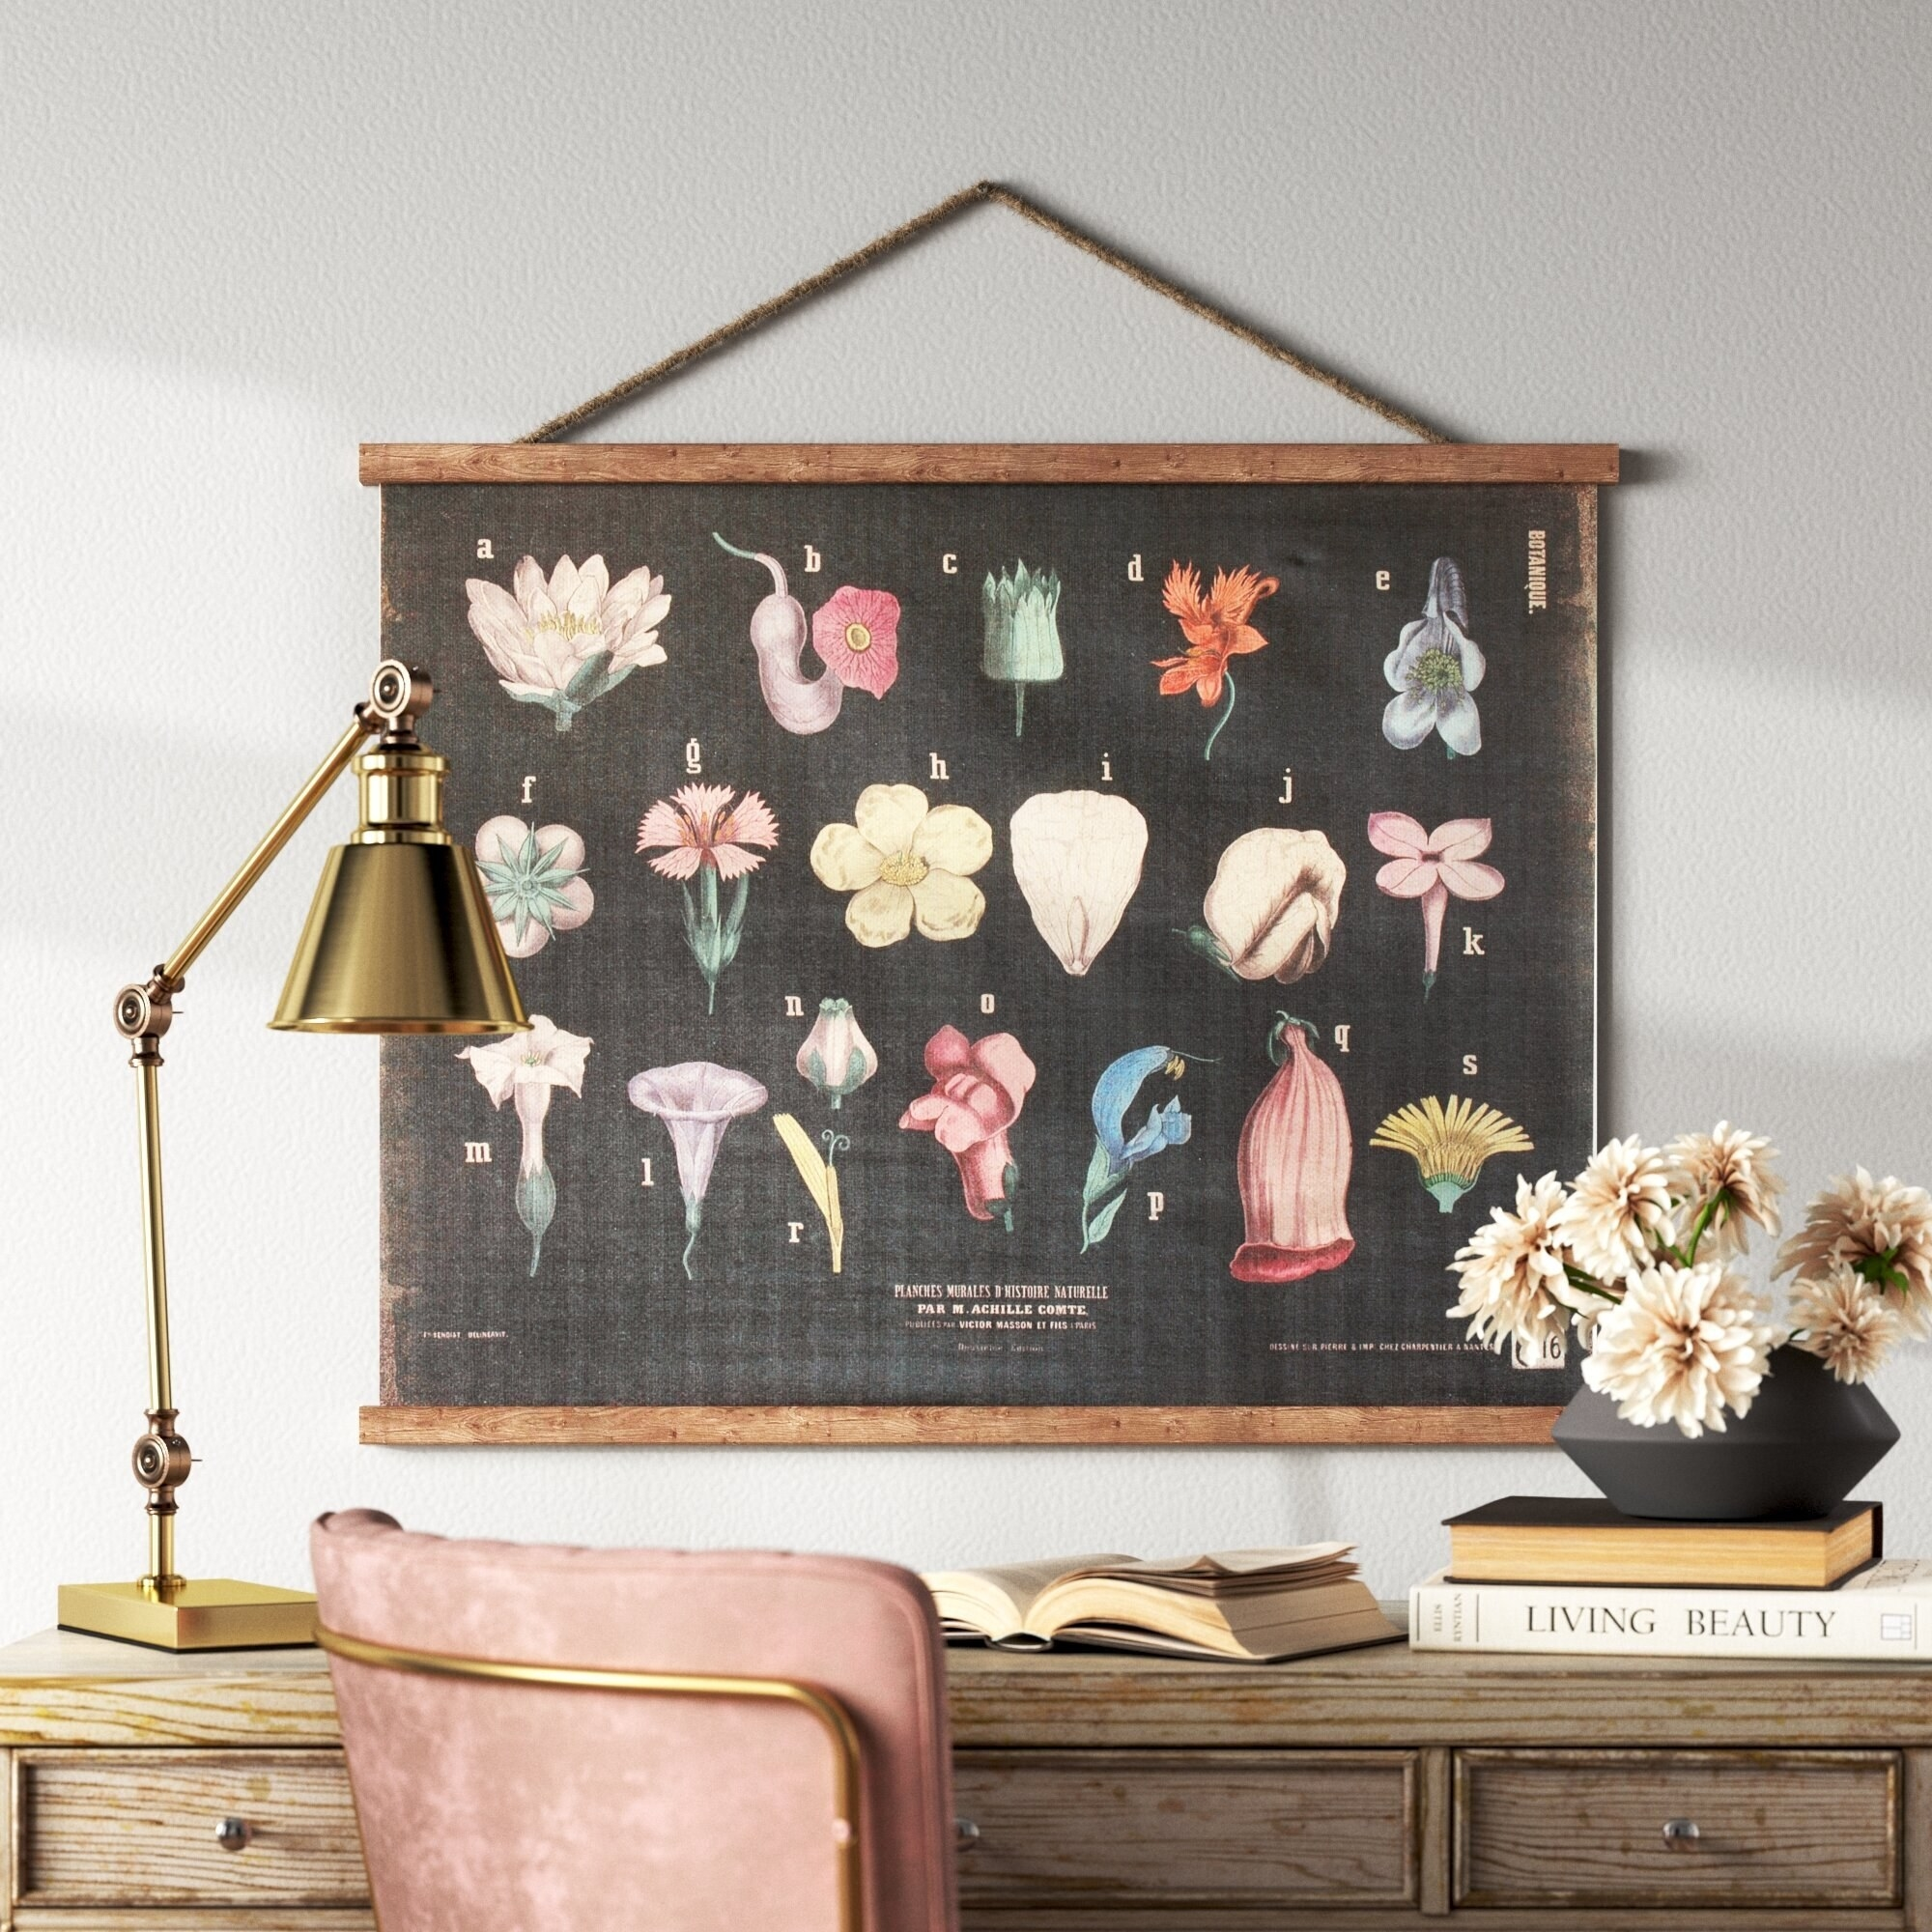 worn style tapestry held on wall with wooden poster hanger. it has several different flower tops labeled in vintage style.